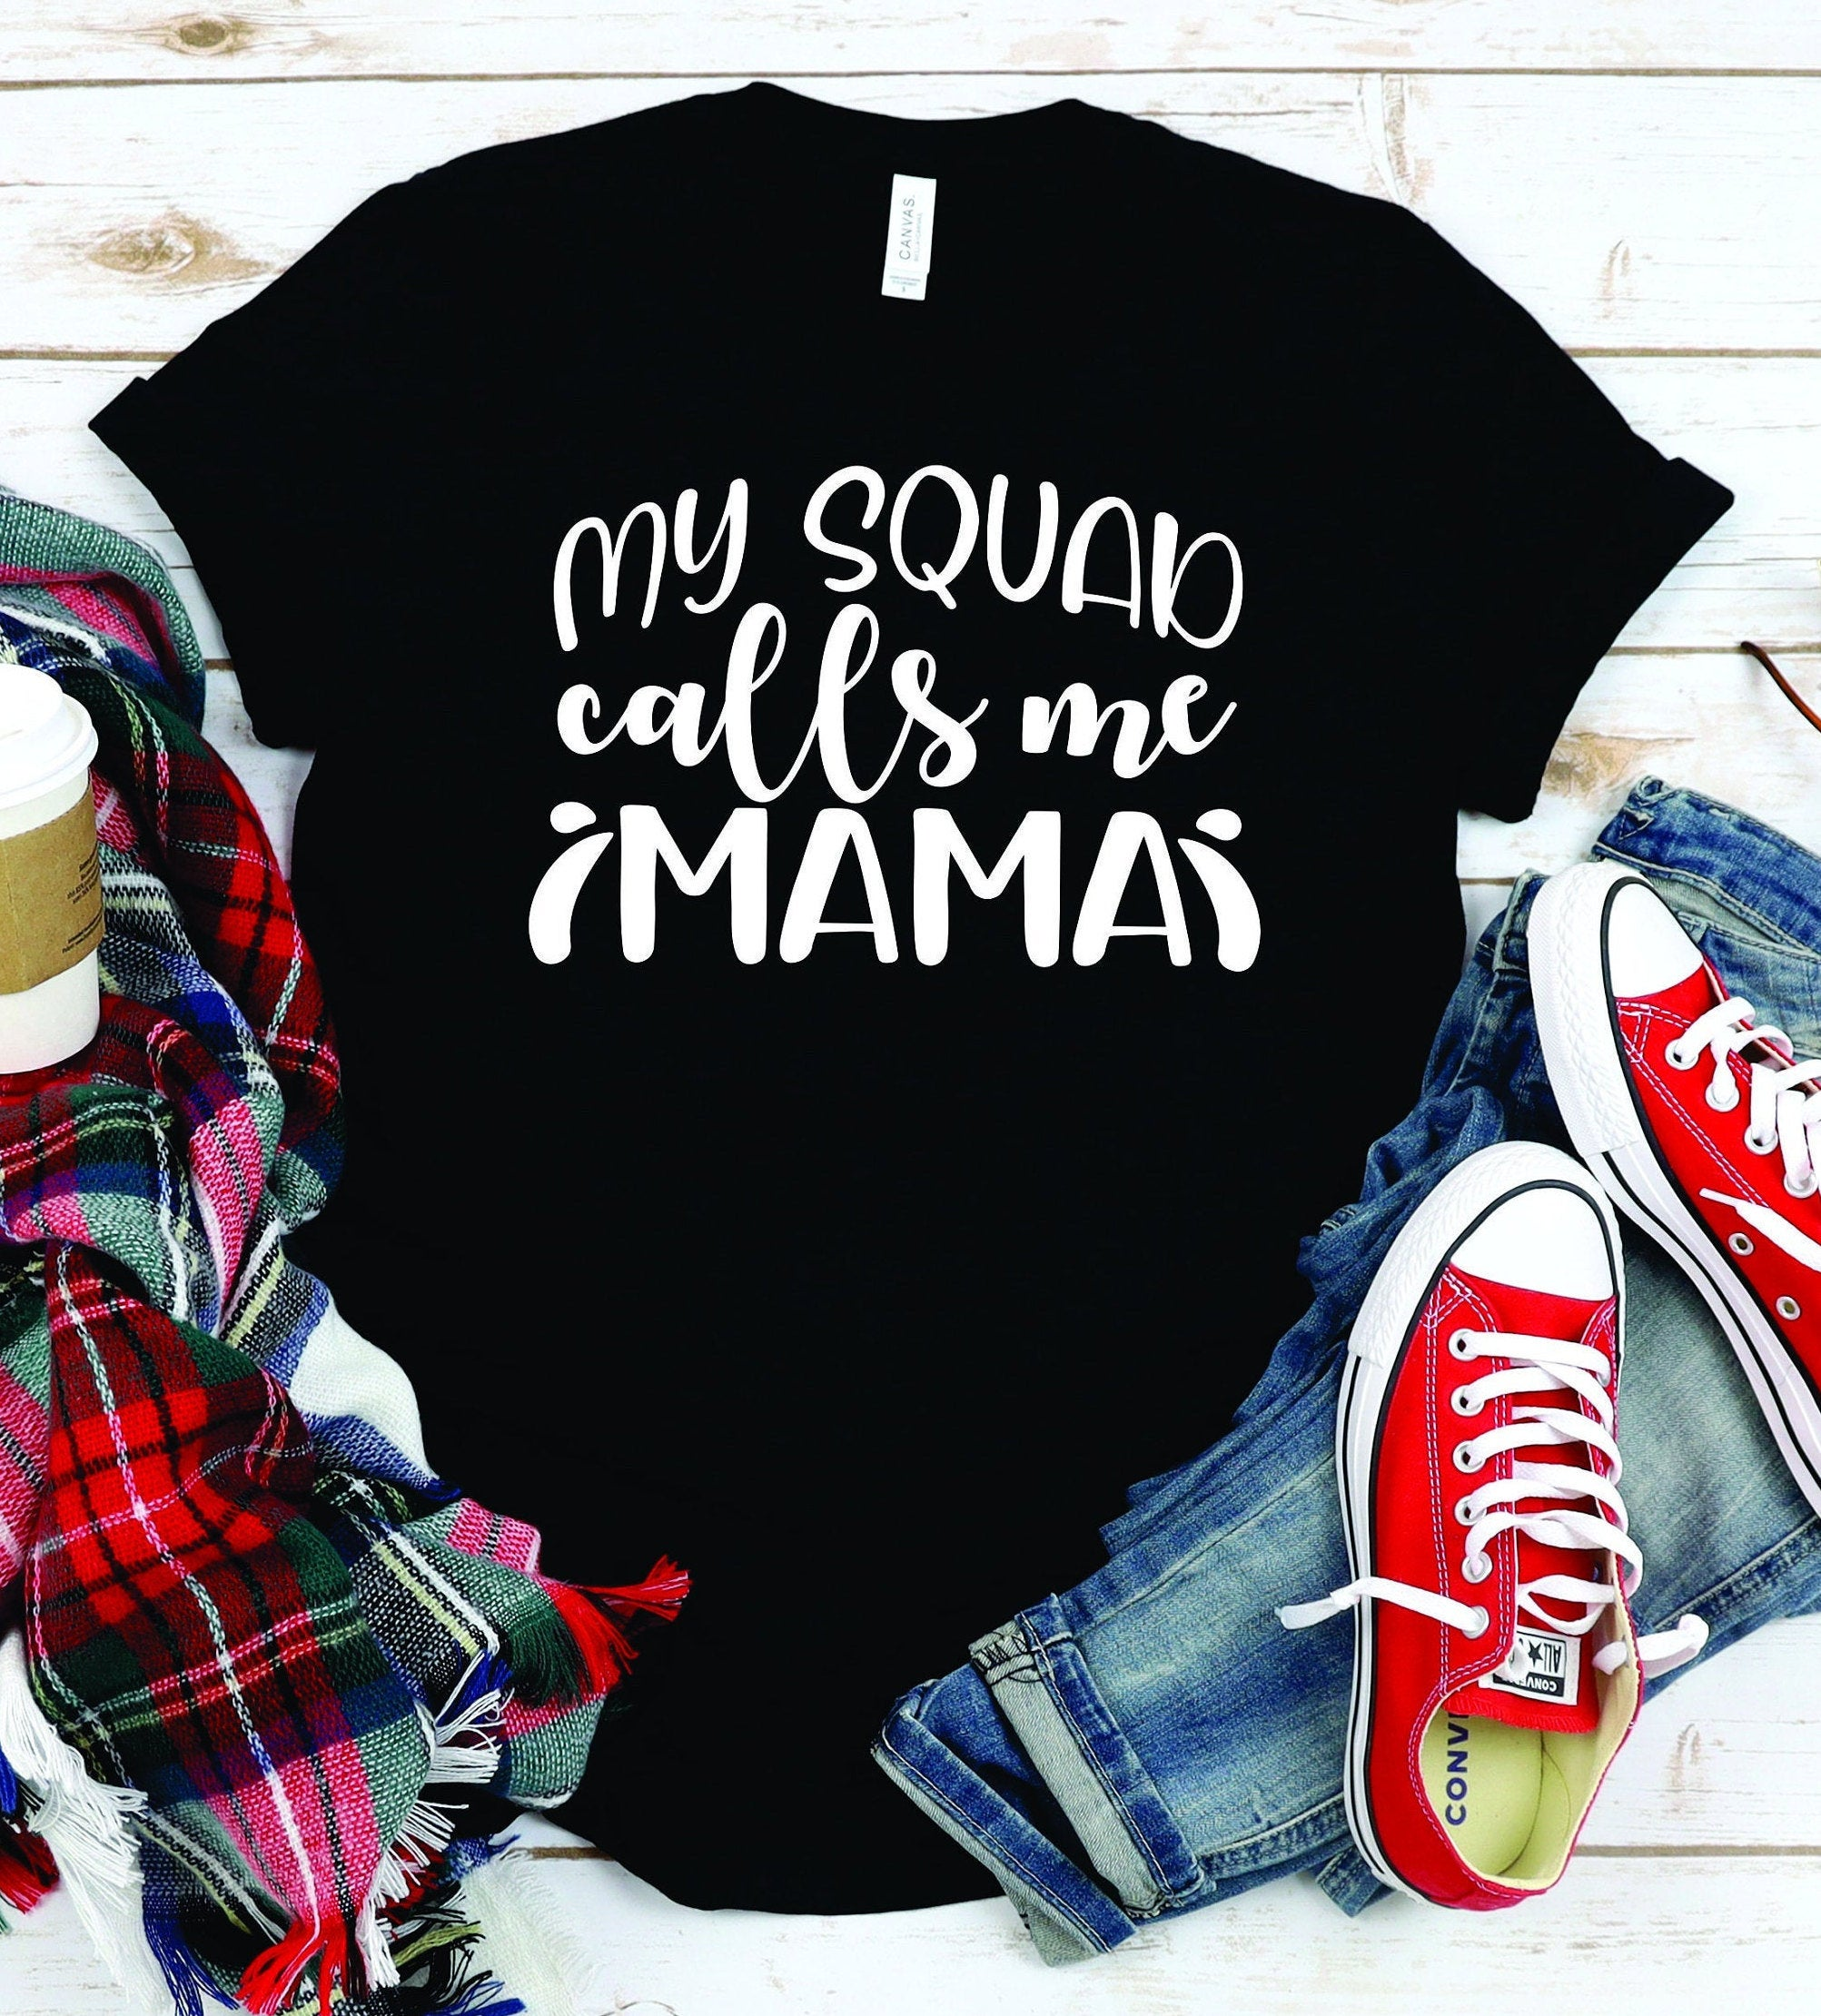 My-squad-calls-me-mom-svg-mothers-day-svg-girl-mom-svg-boy-mom-svg-mom-quote-svg-motherhood-svg-mothers-day-svg-design-cricut-svg-60514a2b